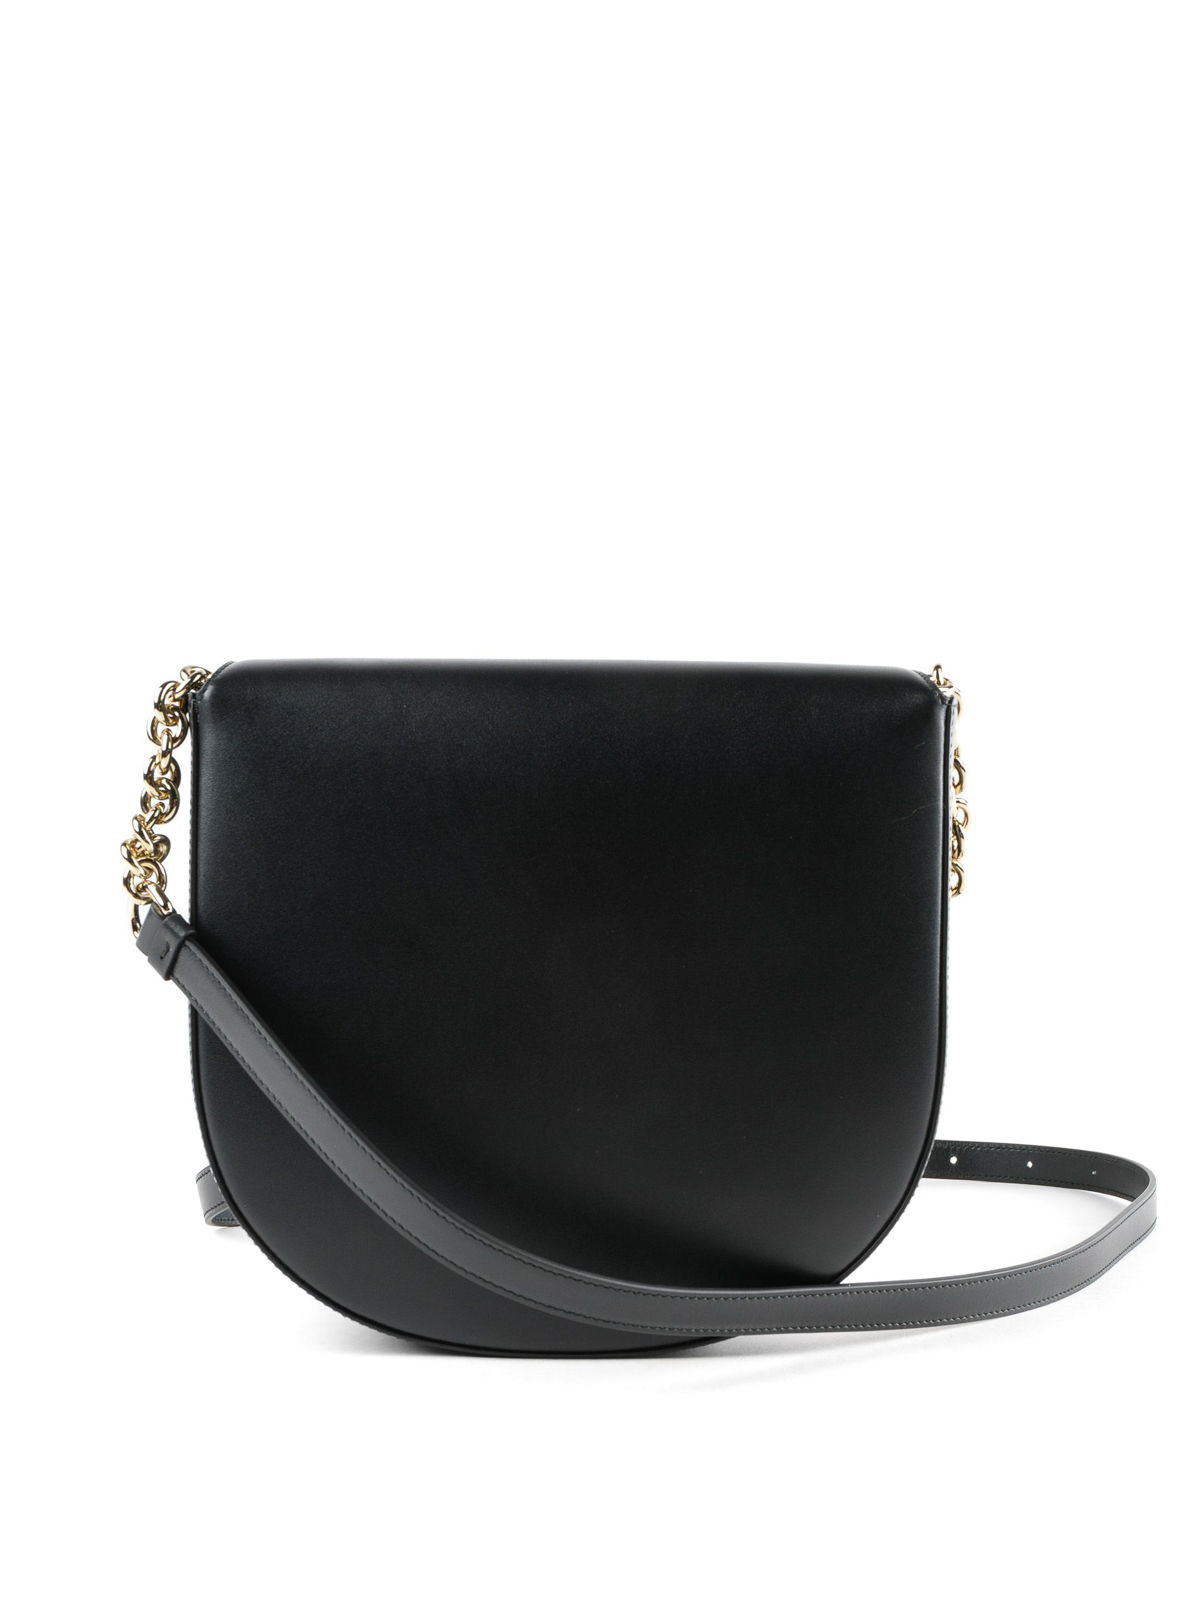 iKRIX SALVATORE FERRAGAMO  cross body bags - Vela black leather cross body  bag 2d13e48e0ba12